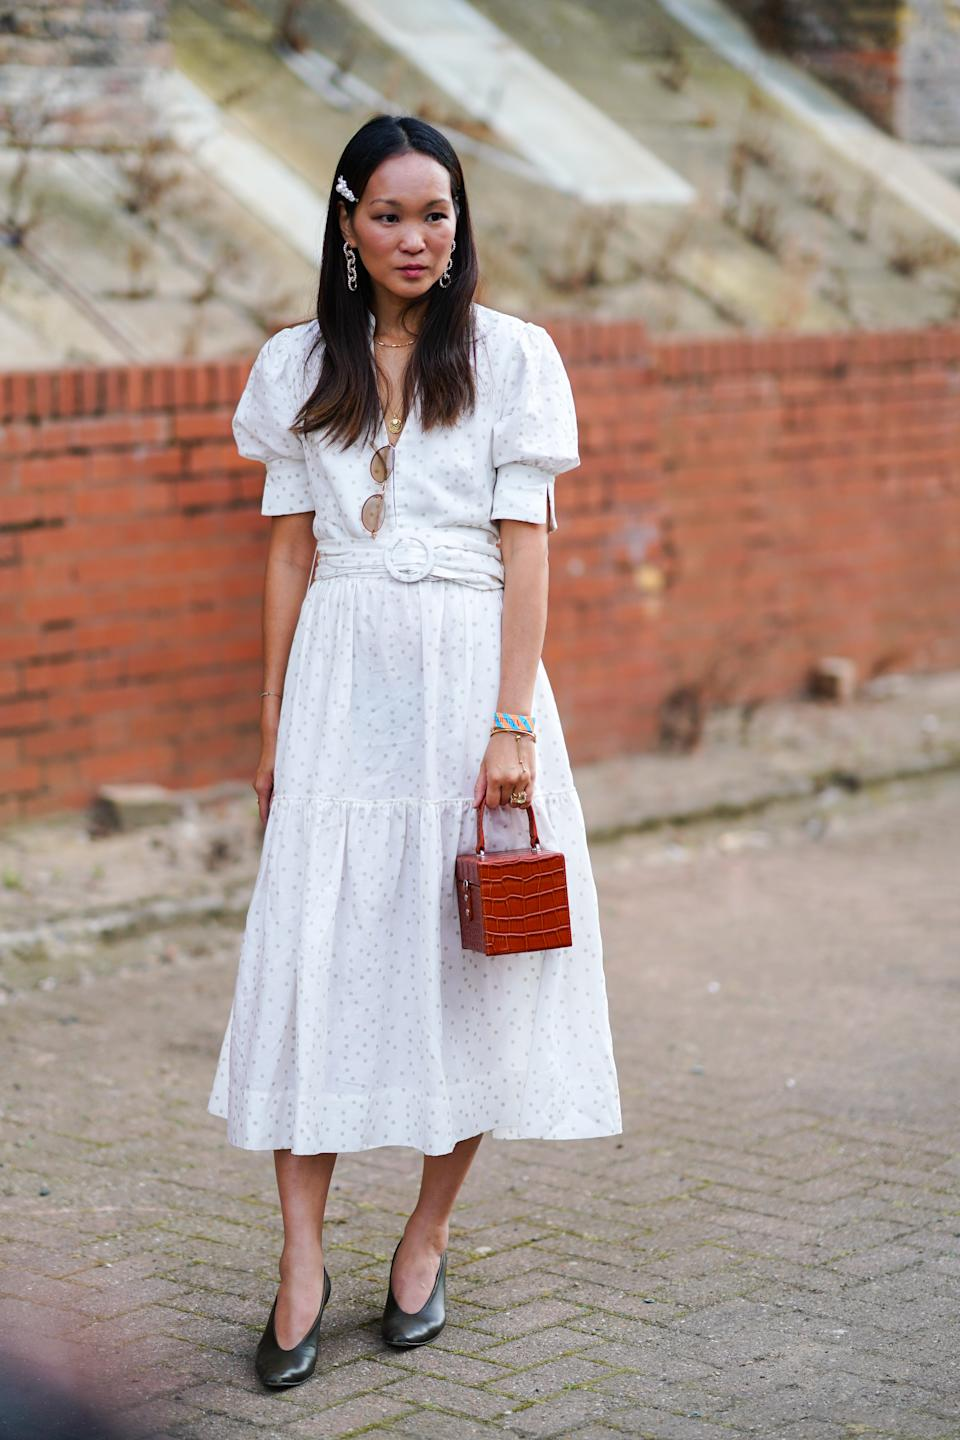 A guest is seen wearing a white dress with a small crocodile print square bag [Photo: Getty Images]